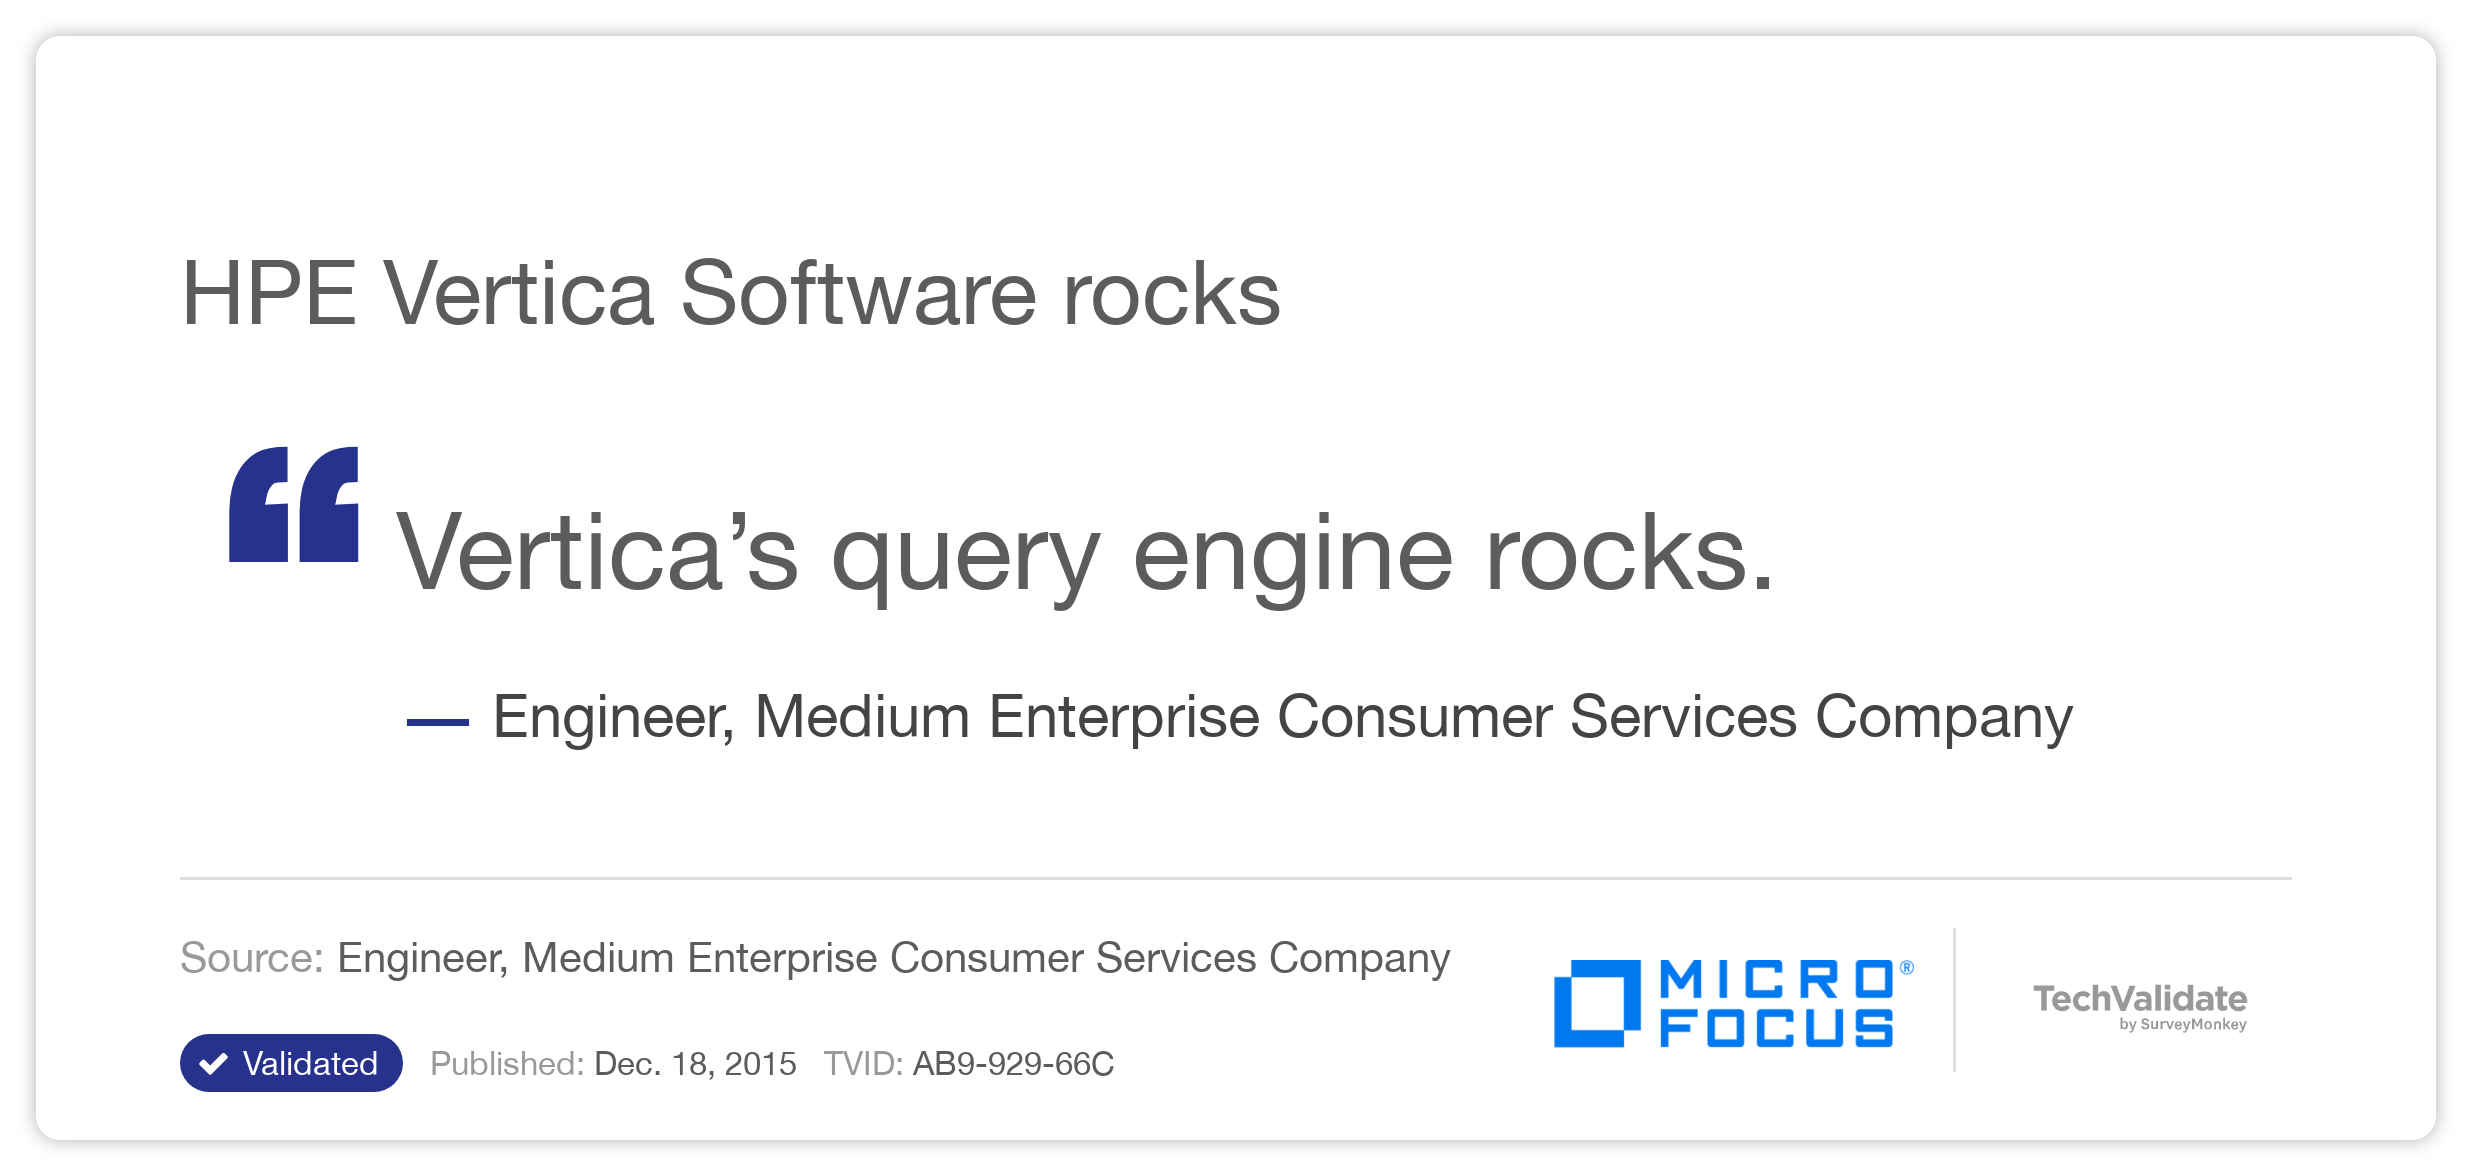 HPE Vertica Software rocks